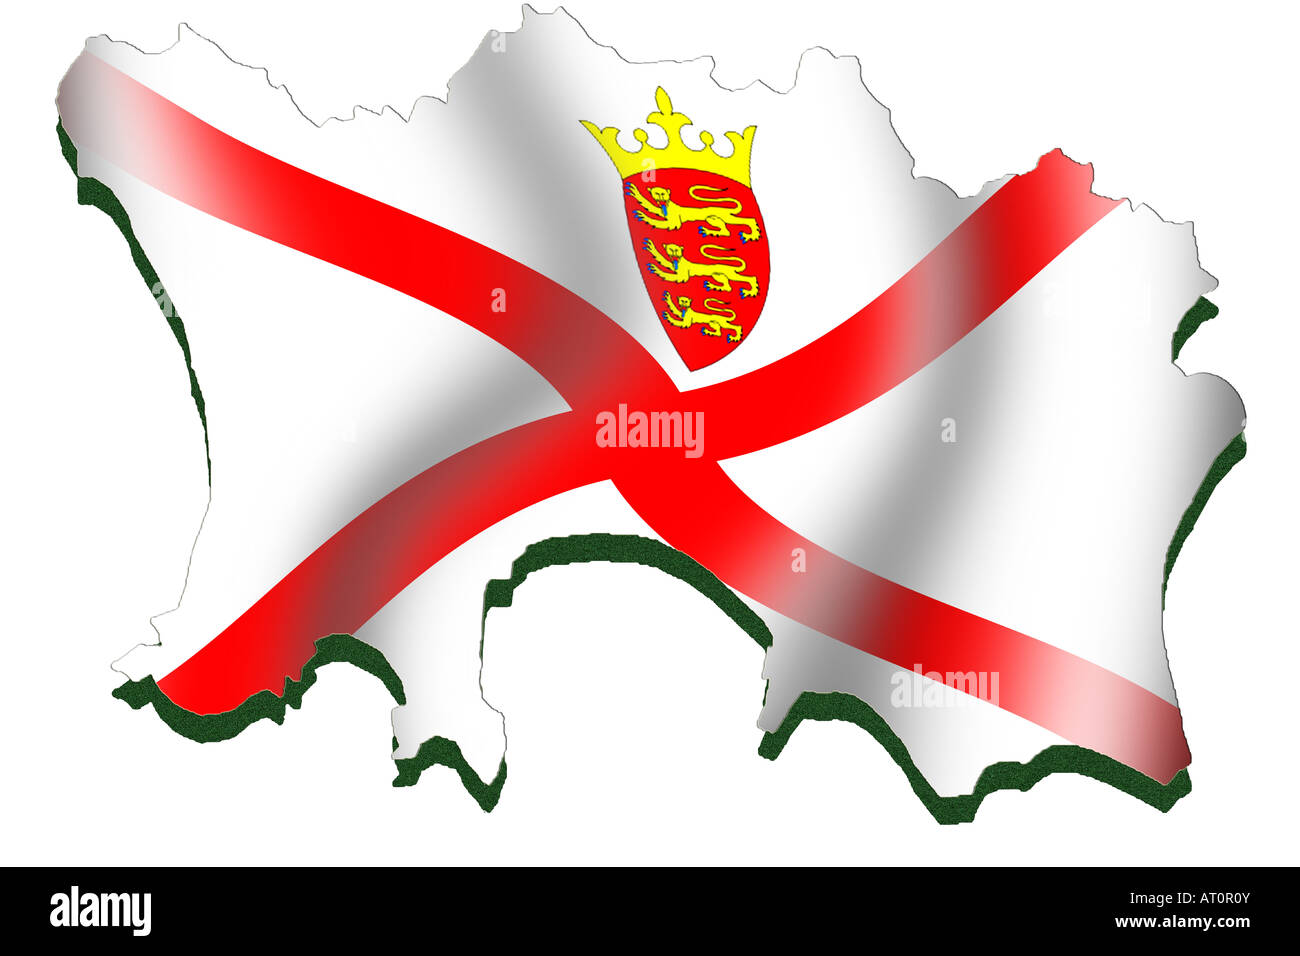 Outline map and flag of Jersey Stock Photo: 16164410 - Alamy